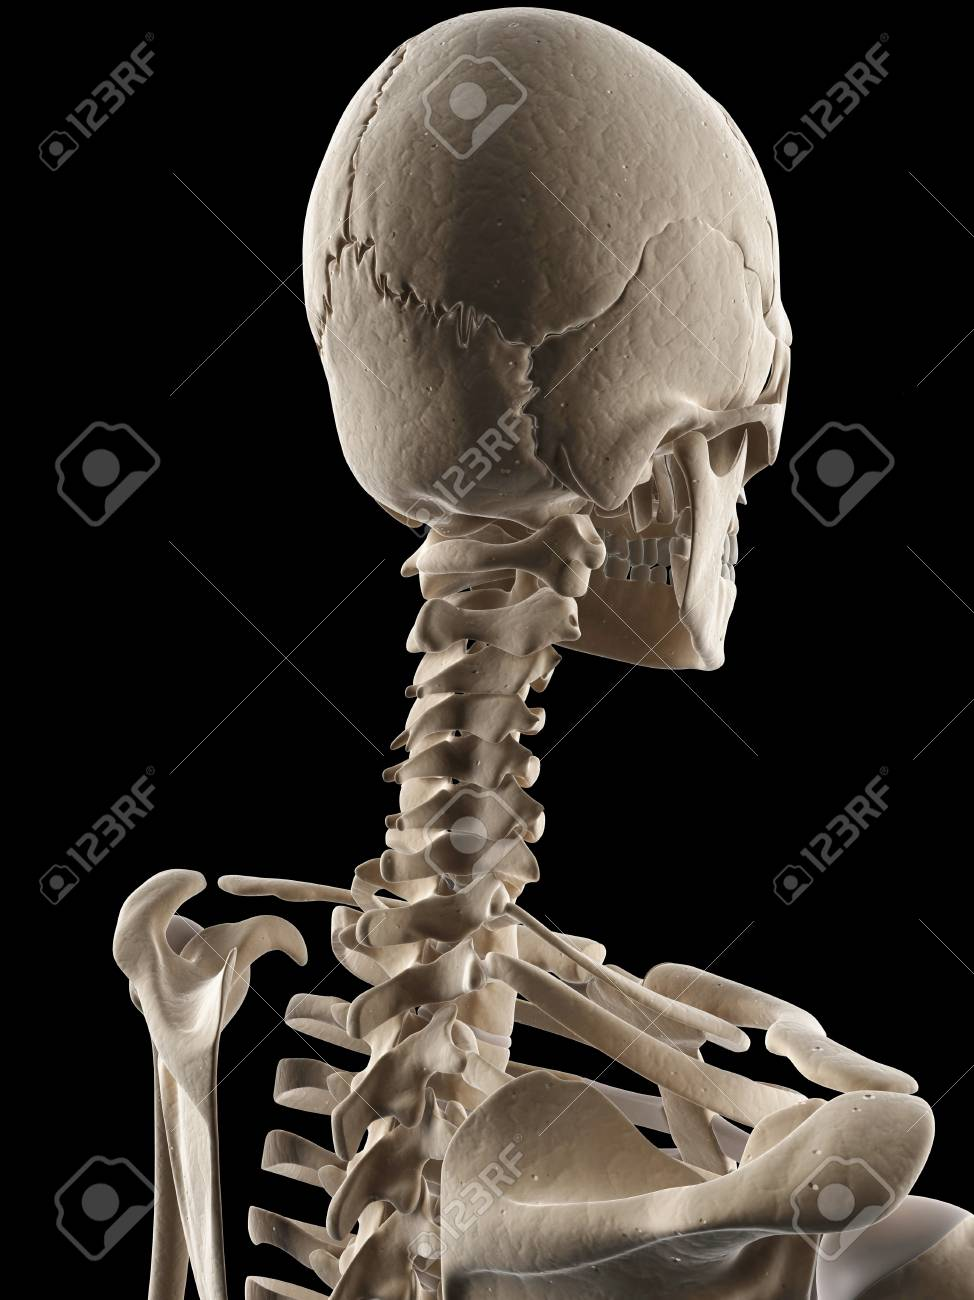 Human Skull And Neck Bones Illustration Stock Photo Picture And